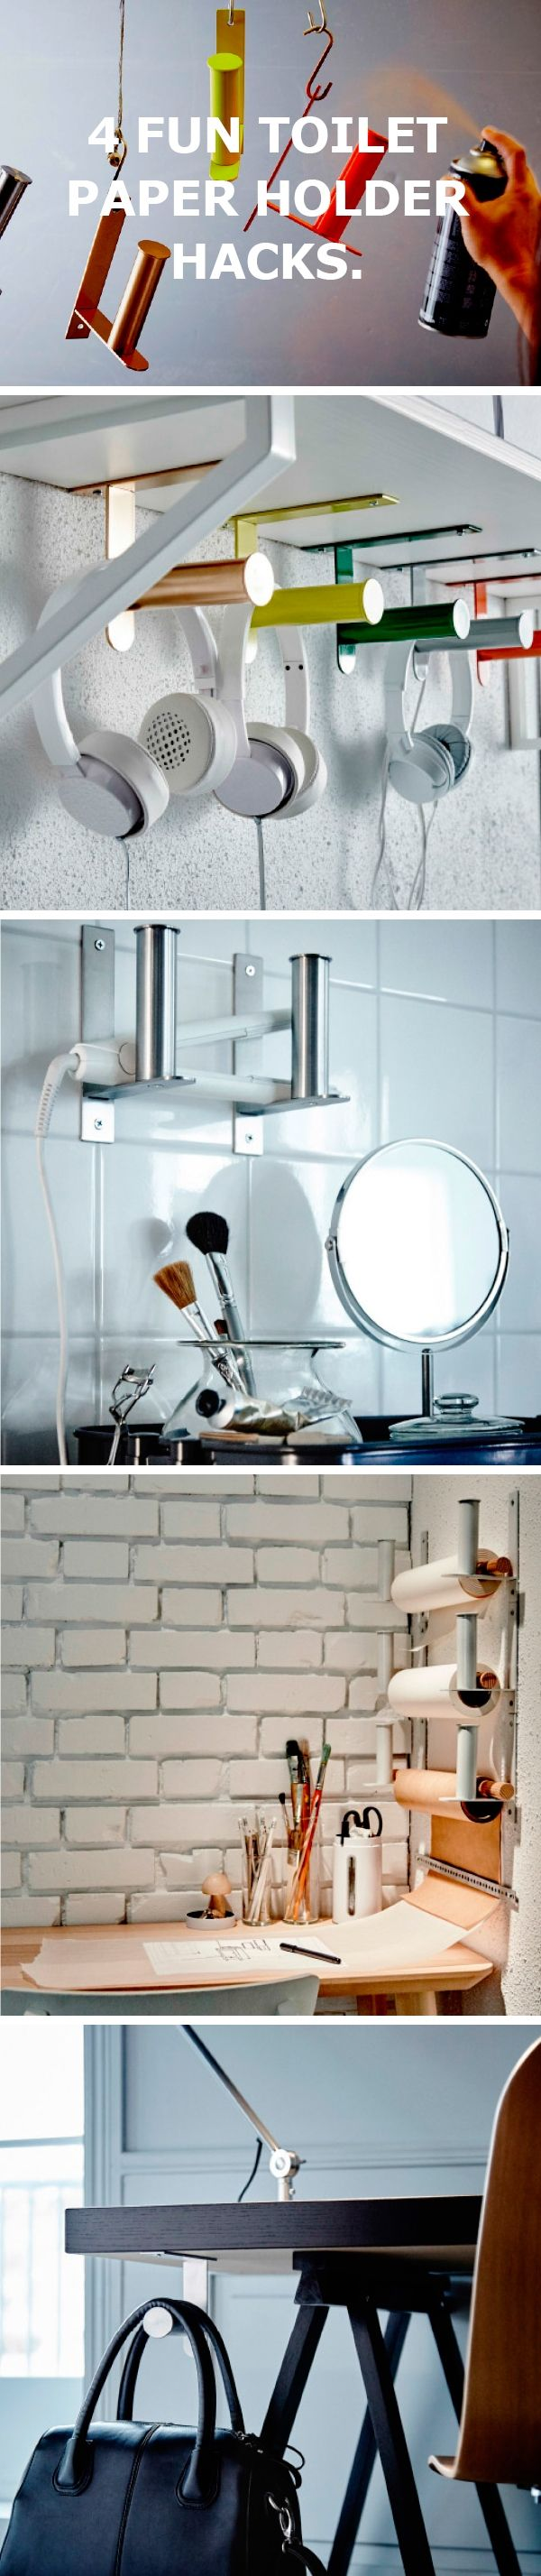 Here are 4 fun toilet paper holder hacks.